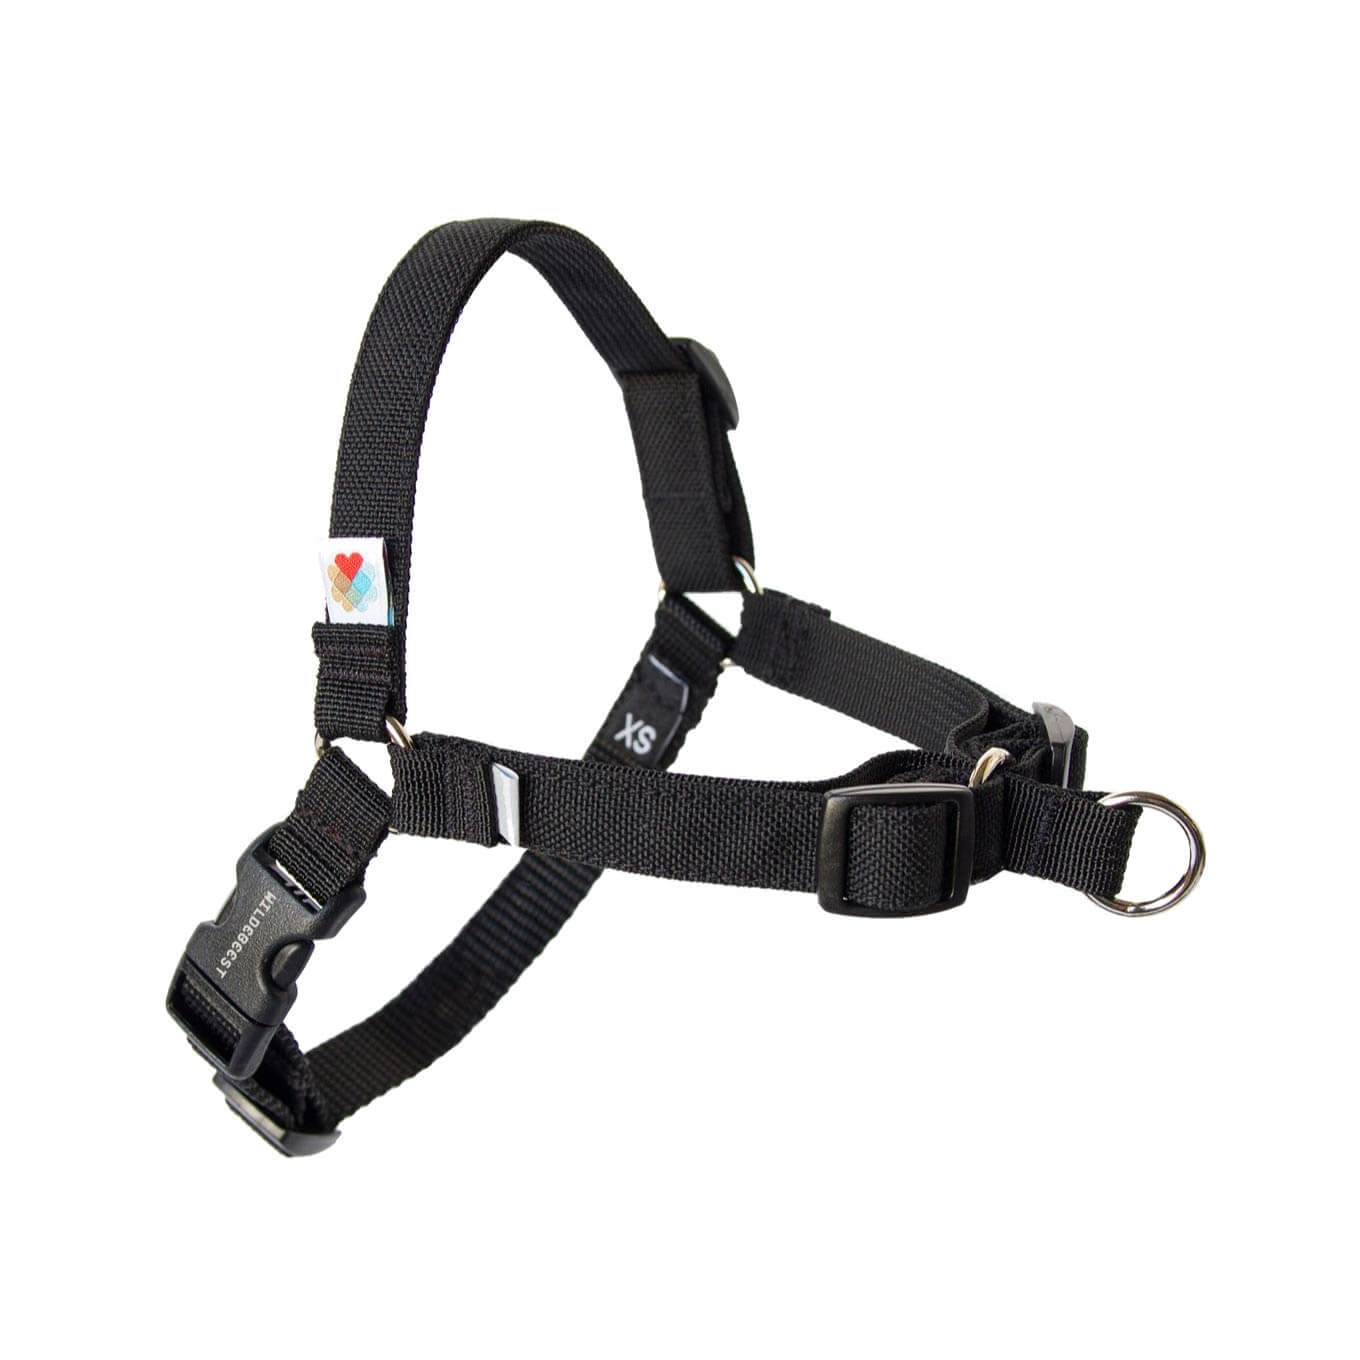 Wildebeest Linden No Pull Harness | Black - Dogs, Harnesses, Walking, Wildebeest - Vanillapup - Online Pet Shop